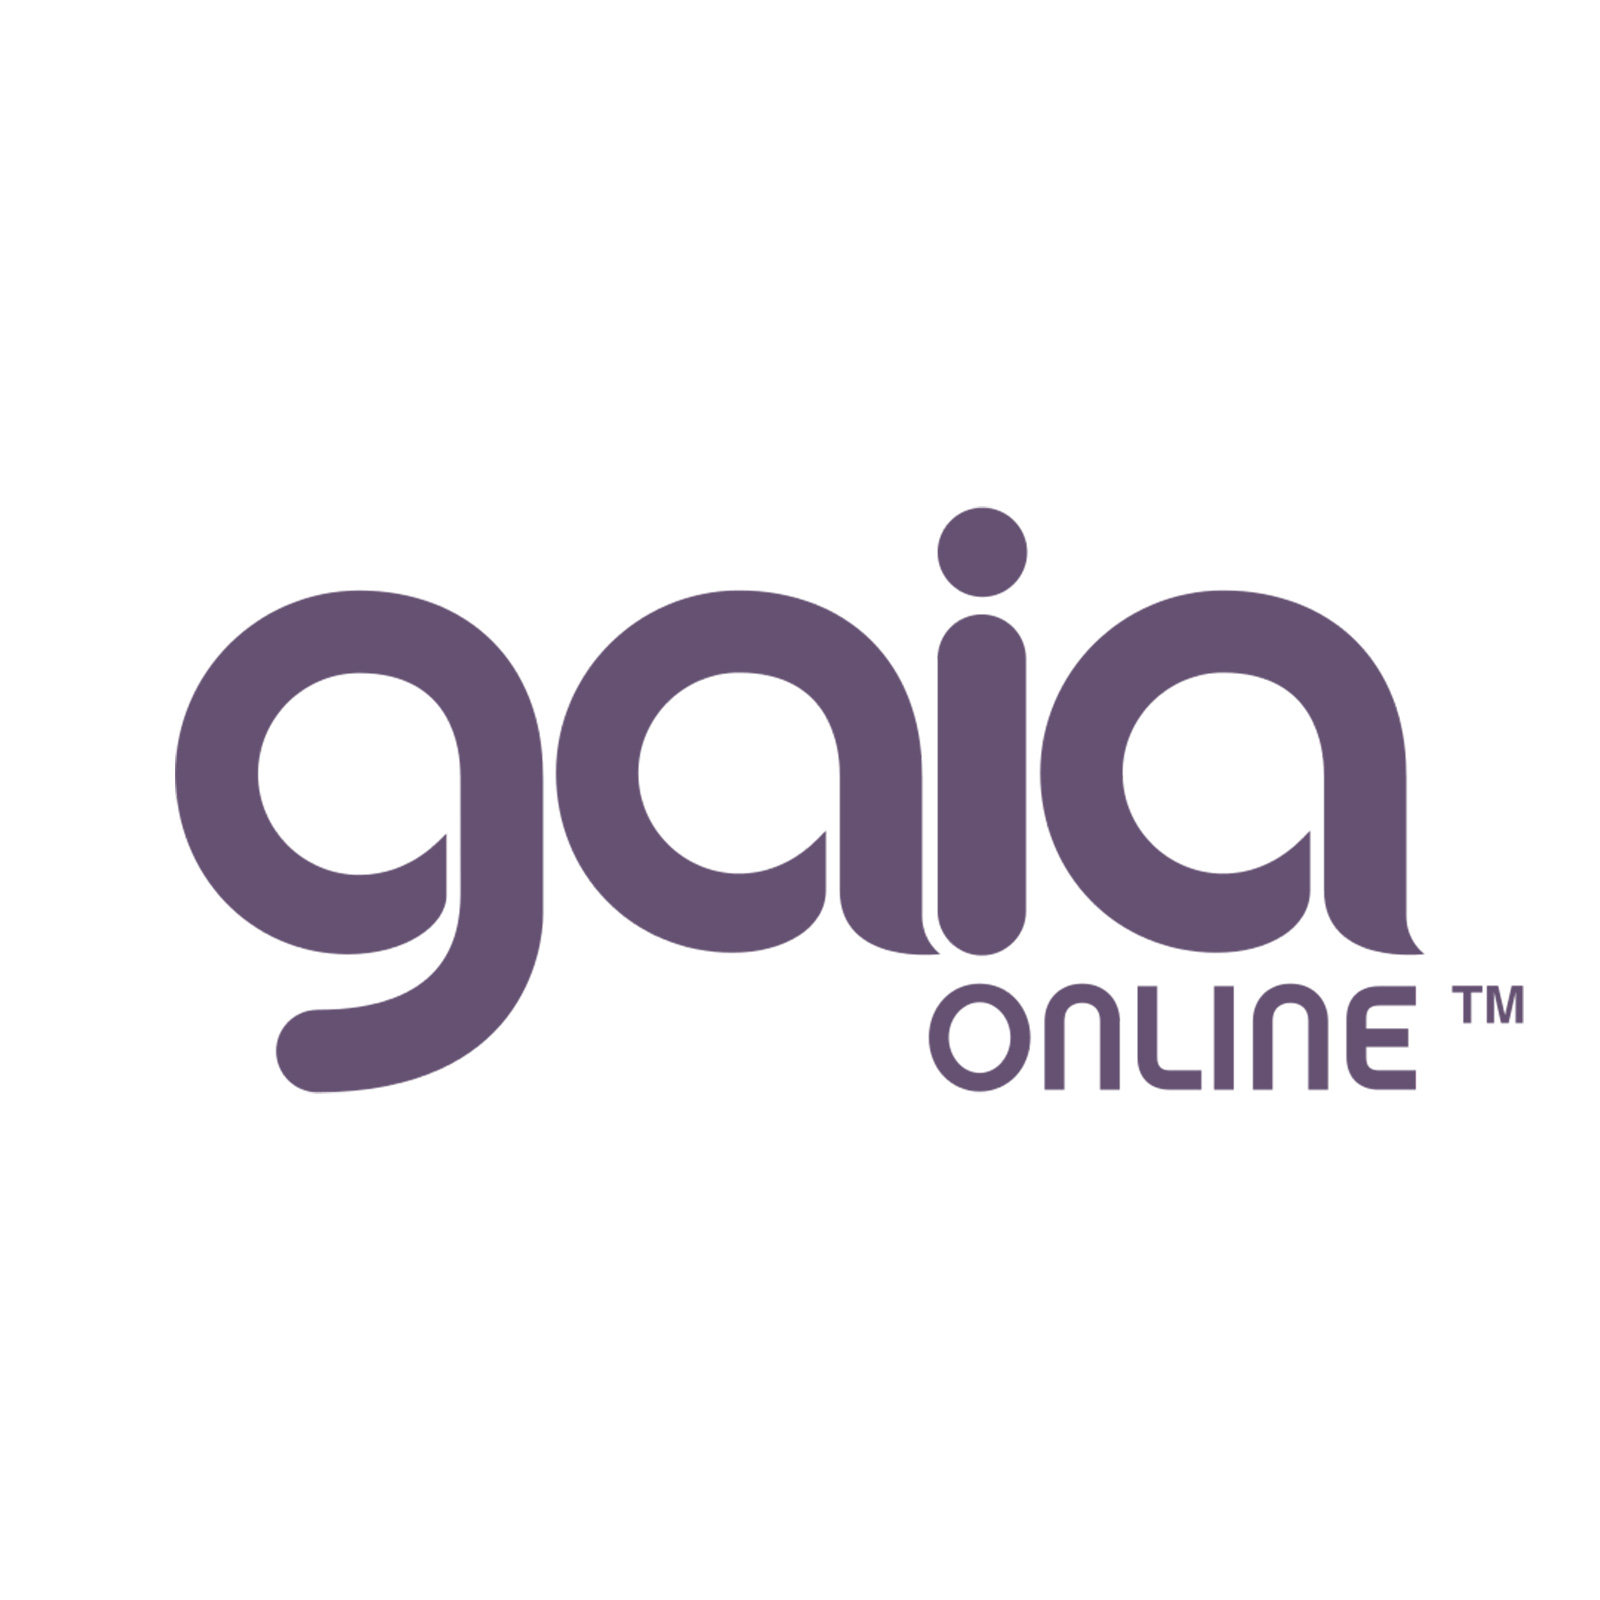 Gaia Online is an anime-themed social networking and forums-based website. It gives users access to avatars, virtual world, games and so on.